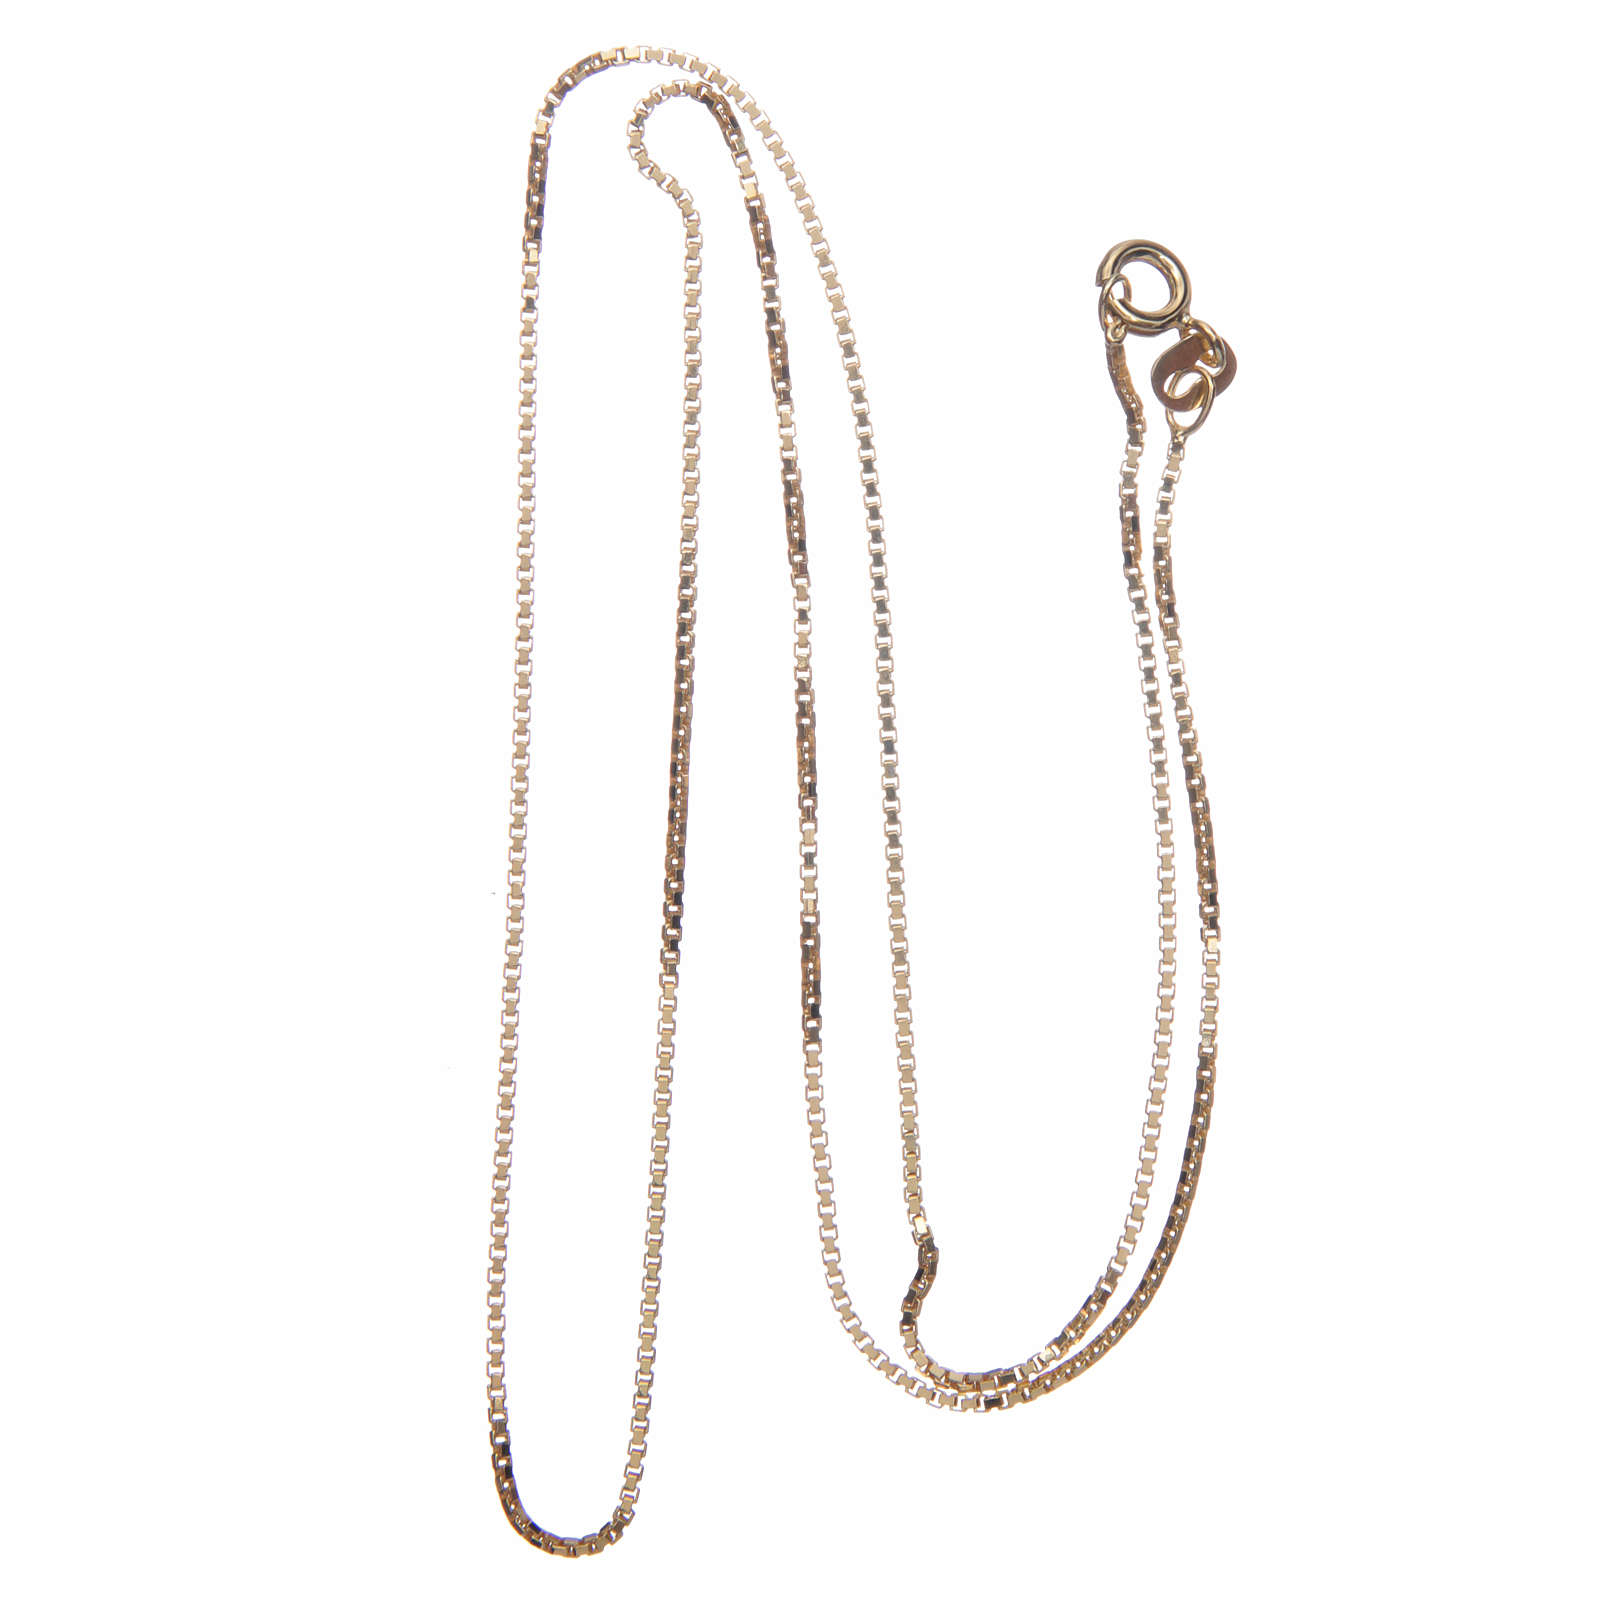 Venetian chain in 925 sterling silver finished in gold, 50 cm length 4